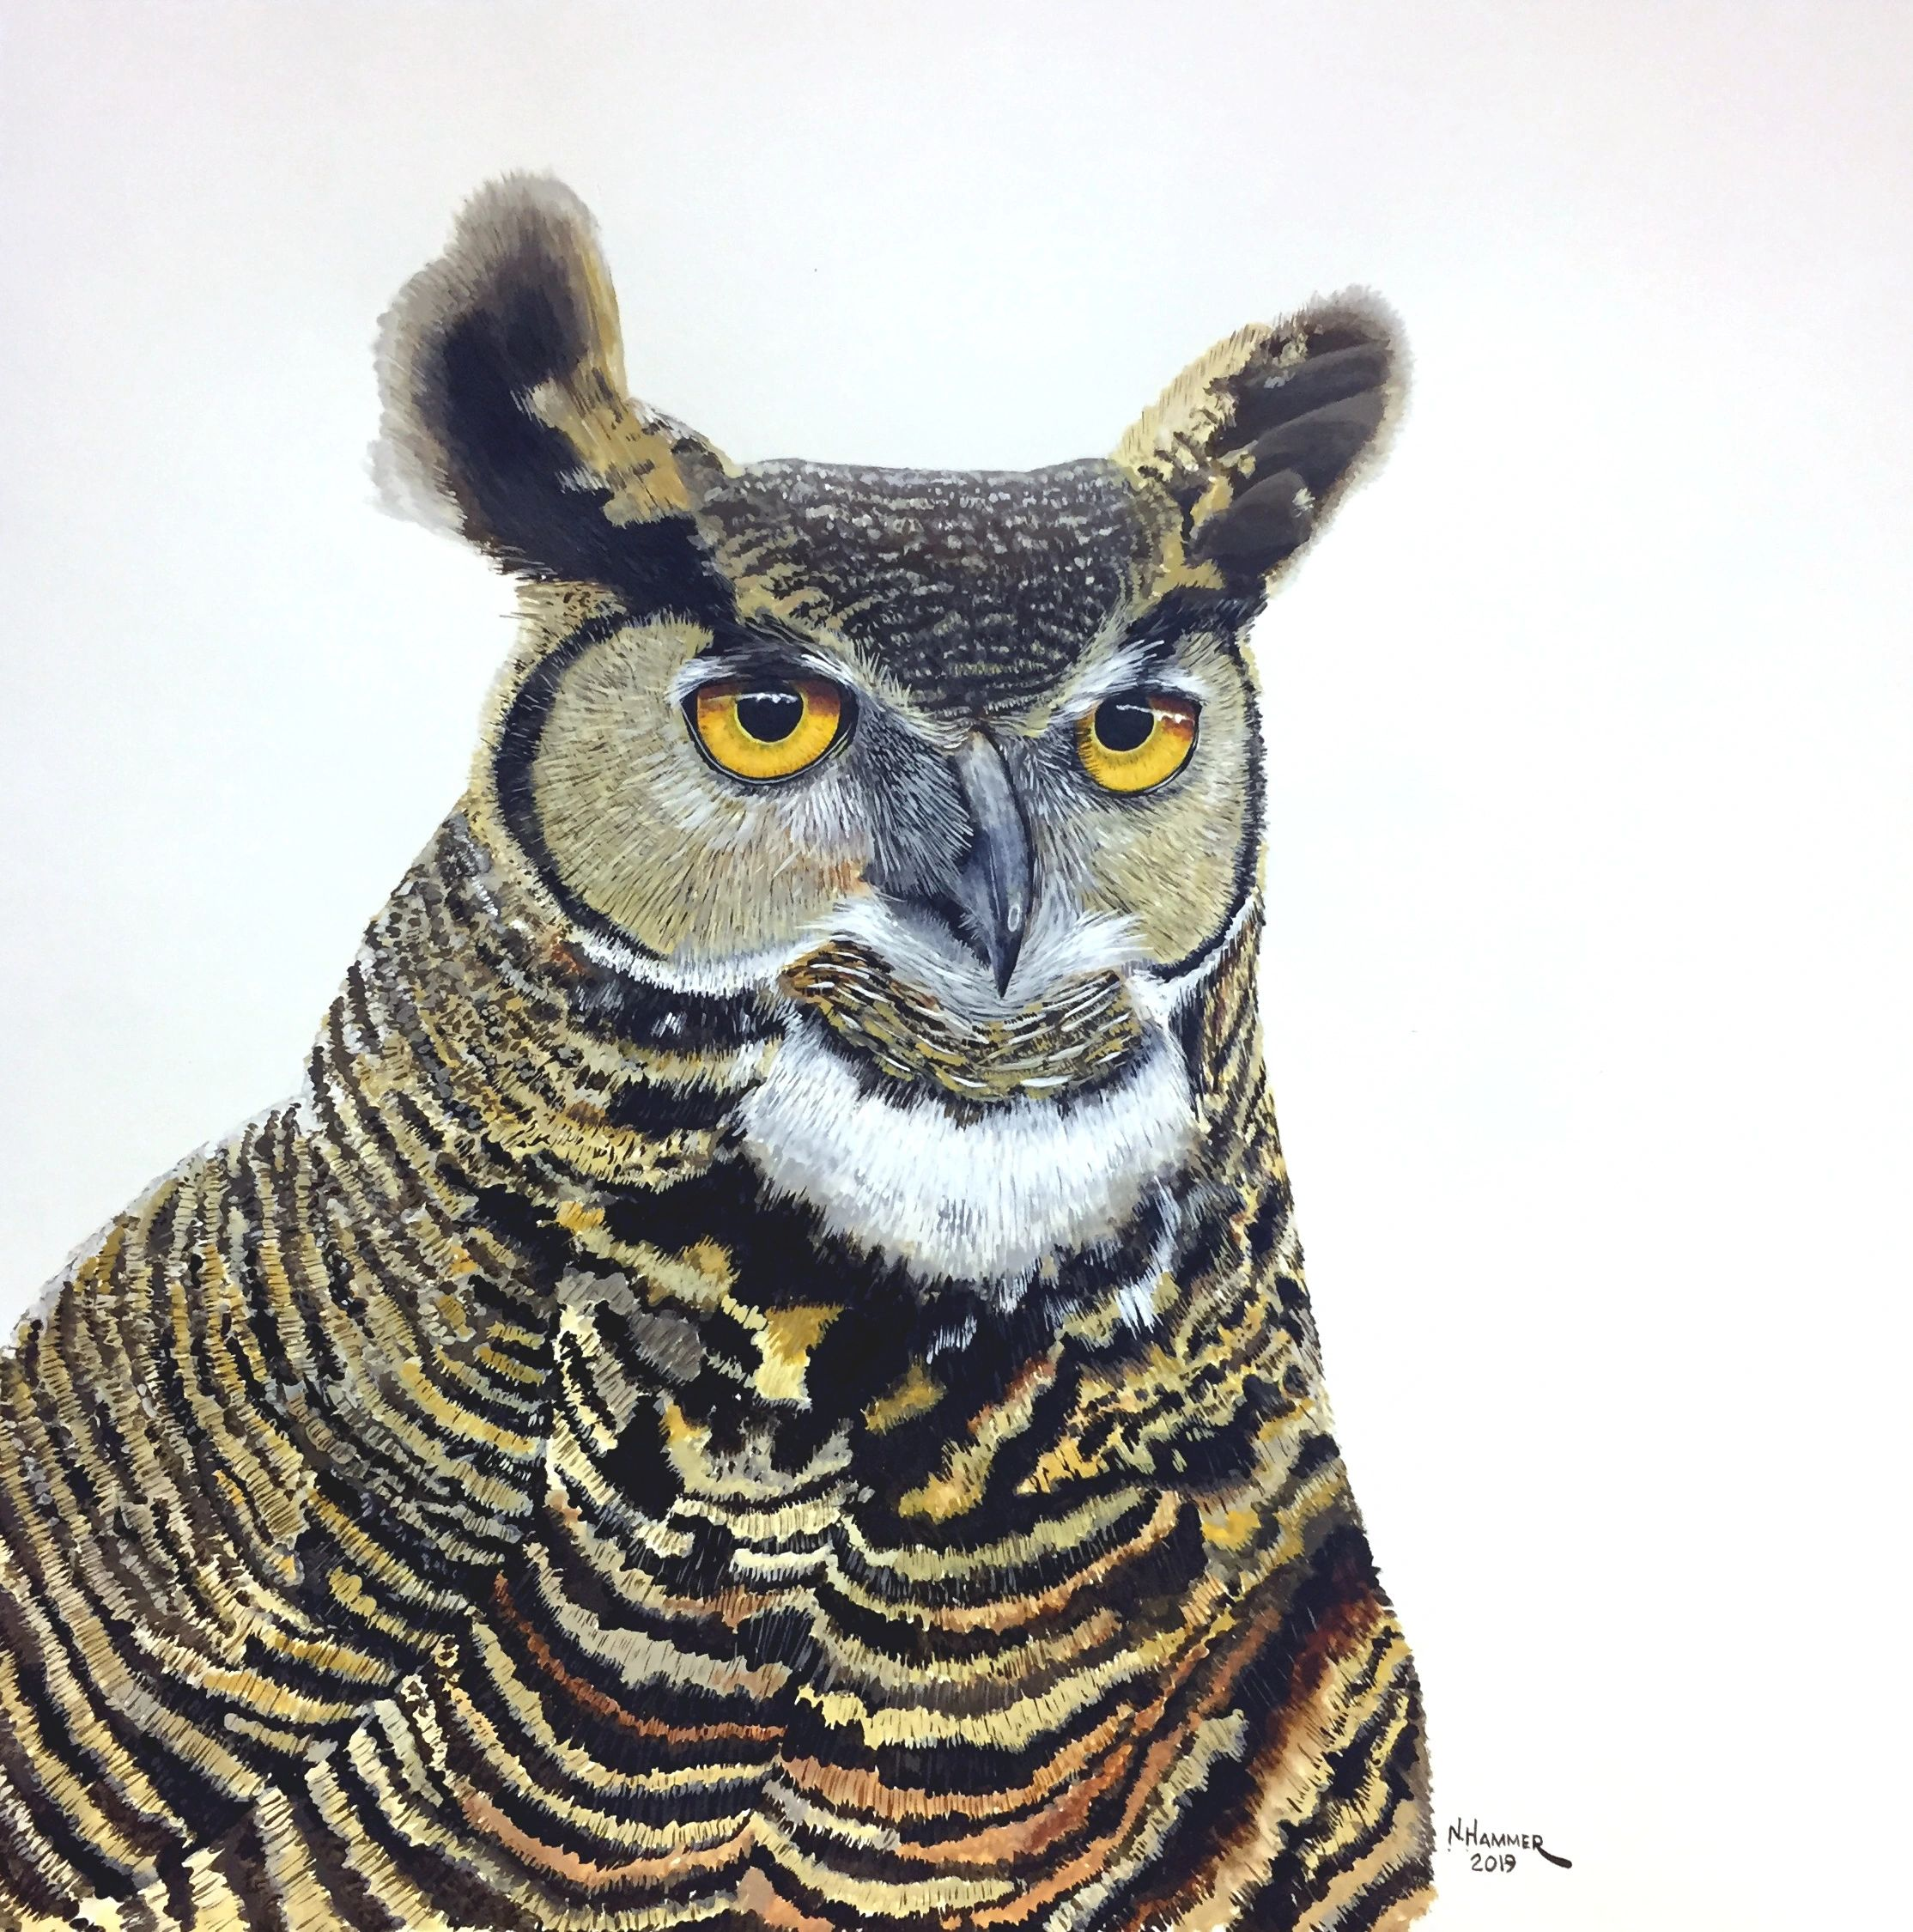 My fourth Great Horned Owl watercolor. Love those big, hooded eyes!